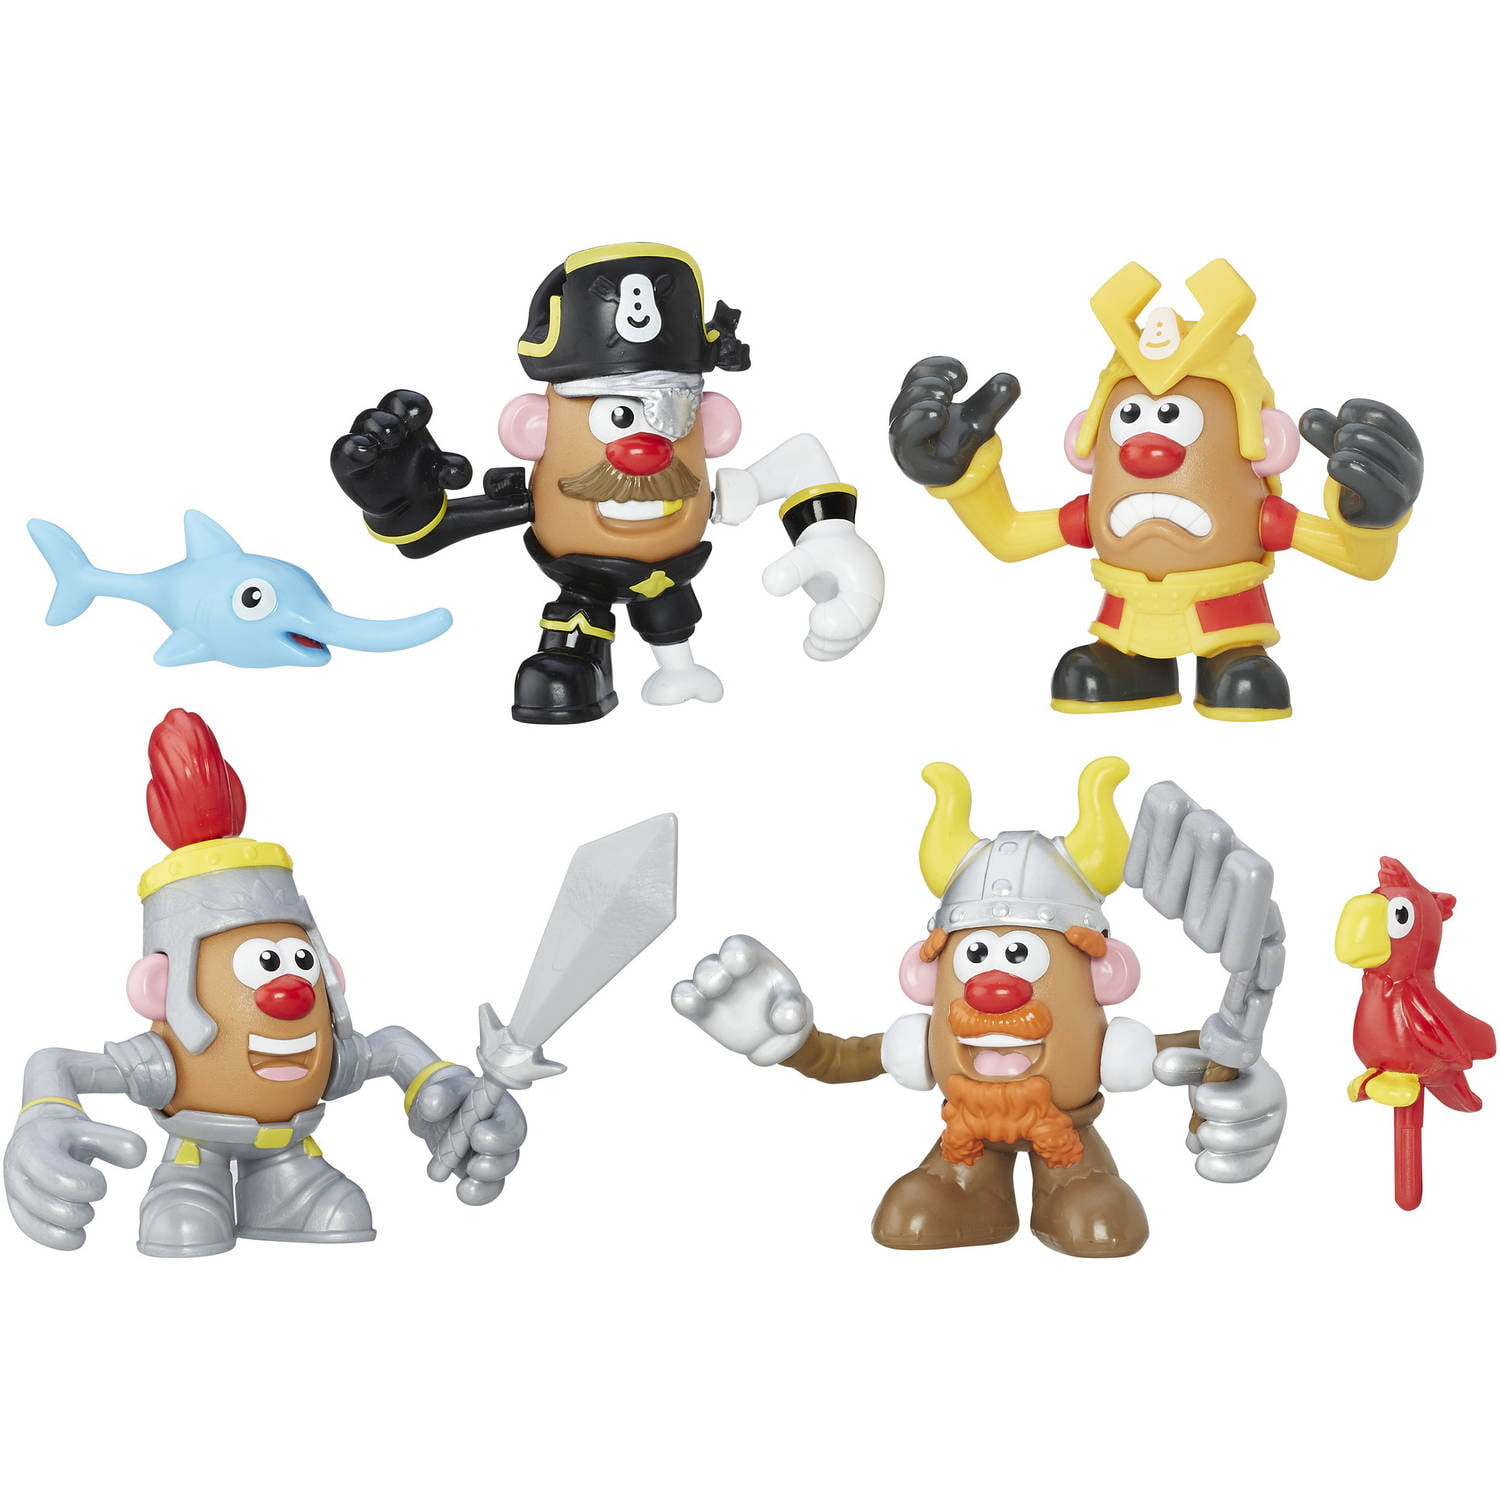 Playskool Friends Mr. Potato Head Clash and Mash Pack by Hasbro